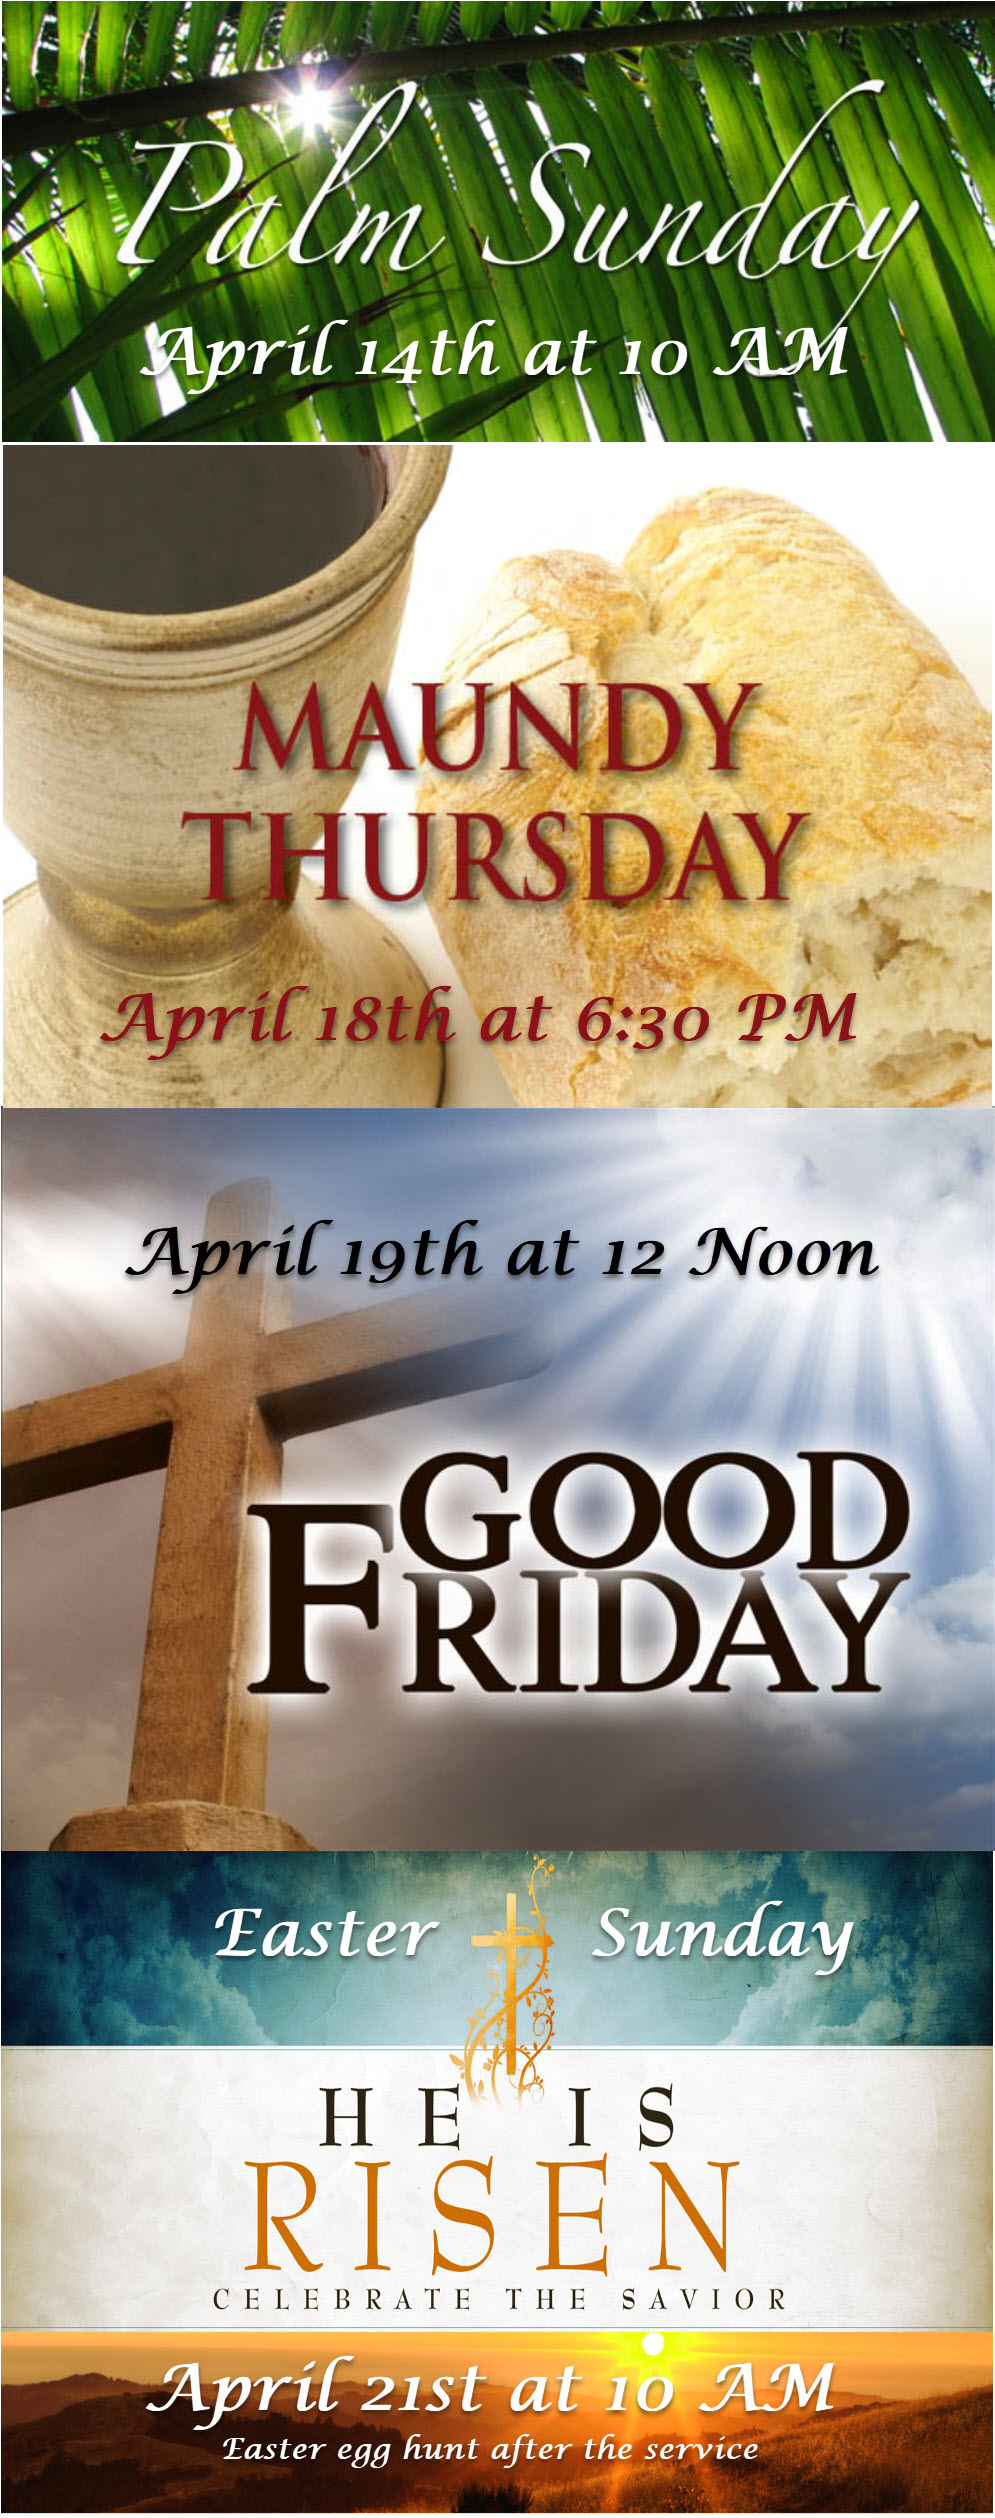 Holy Week and Easter Sunday Schedule.jpg